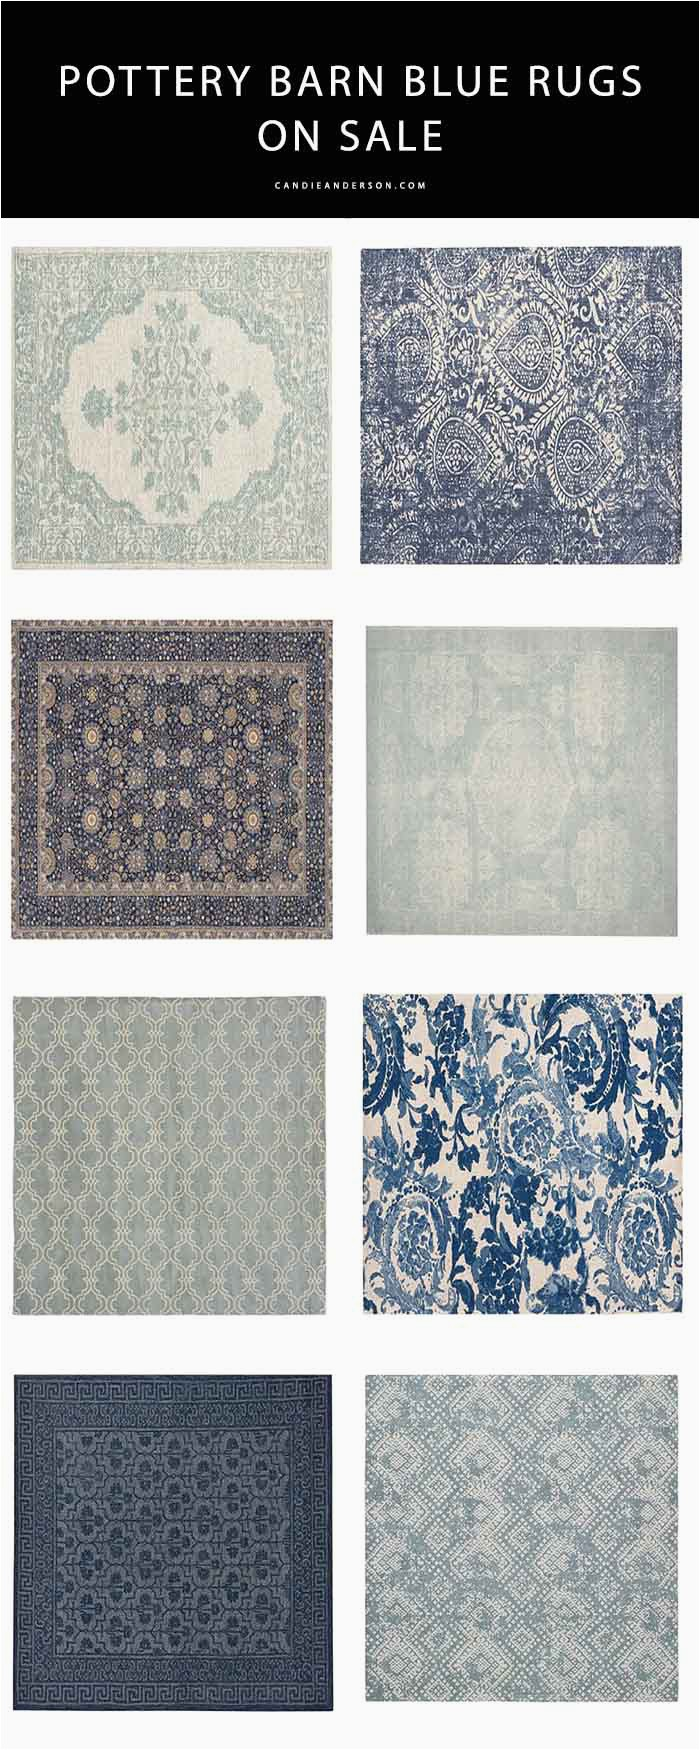 blue pottery barn rugs sale can anderson can anderson home decor collage trends elegant timeless